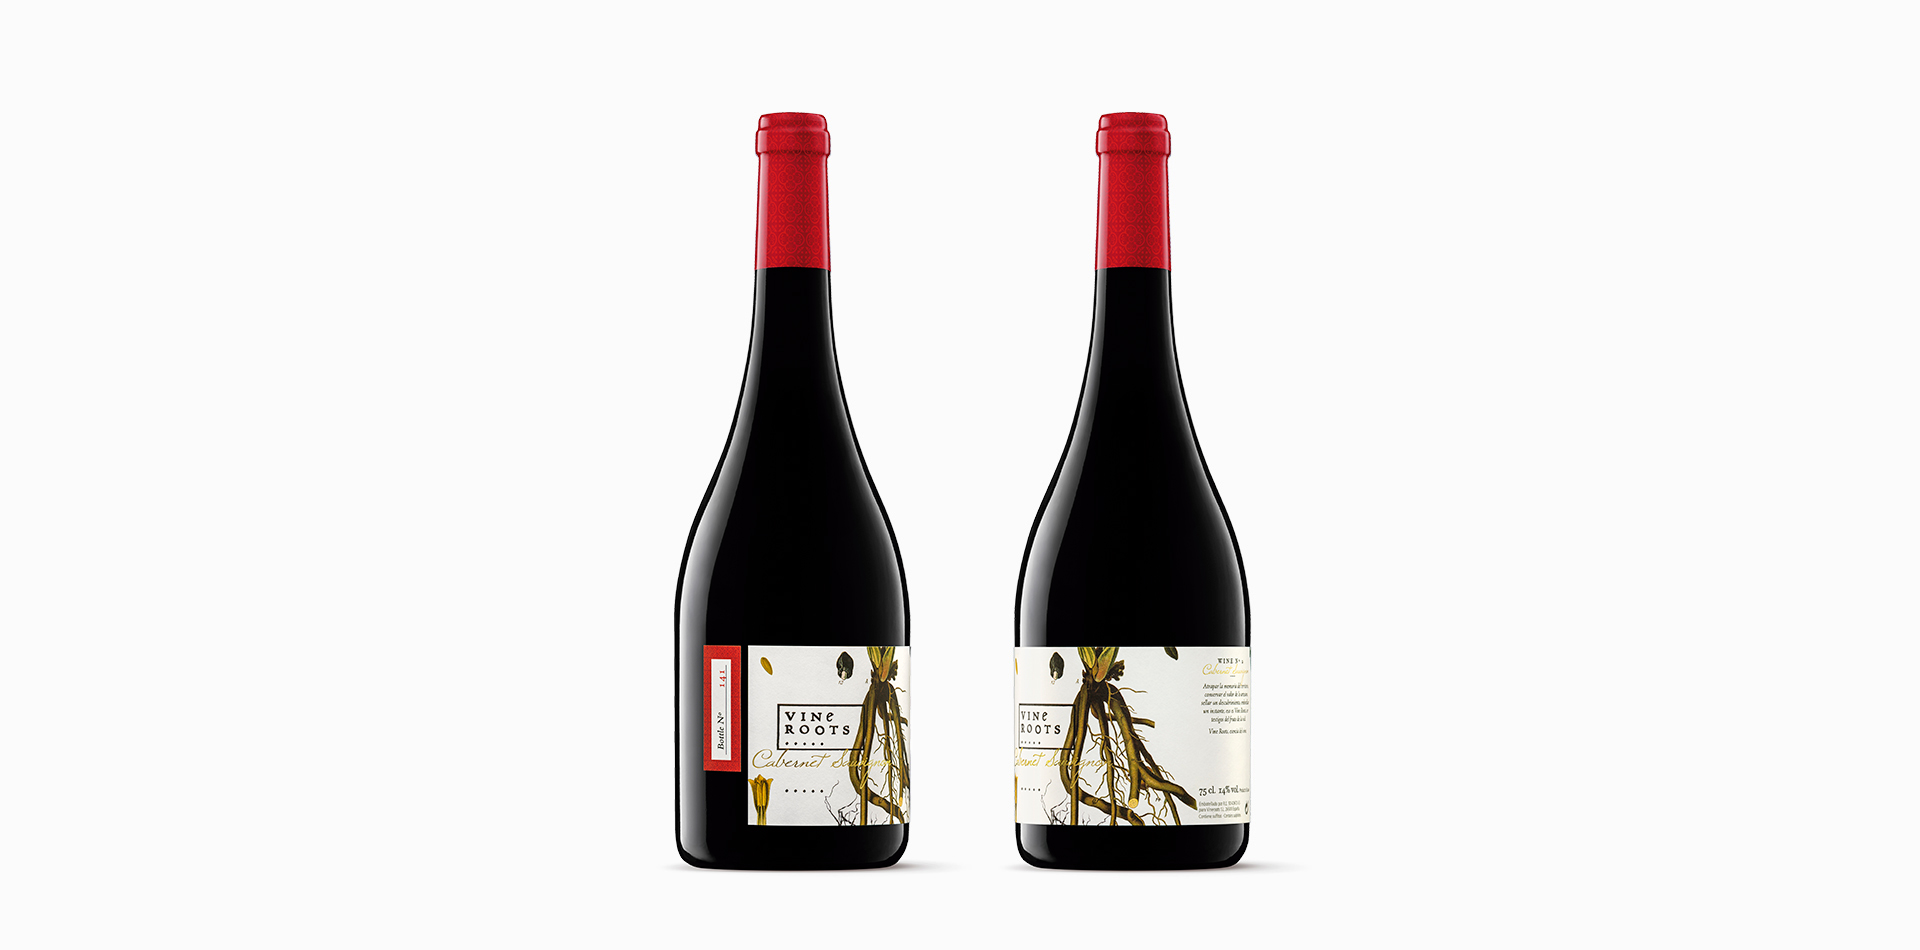 VineRootsSauvignonRojo - Vine Roots -